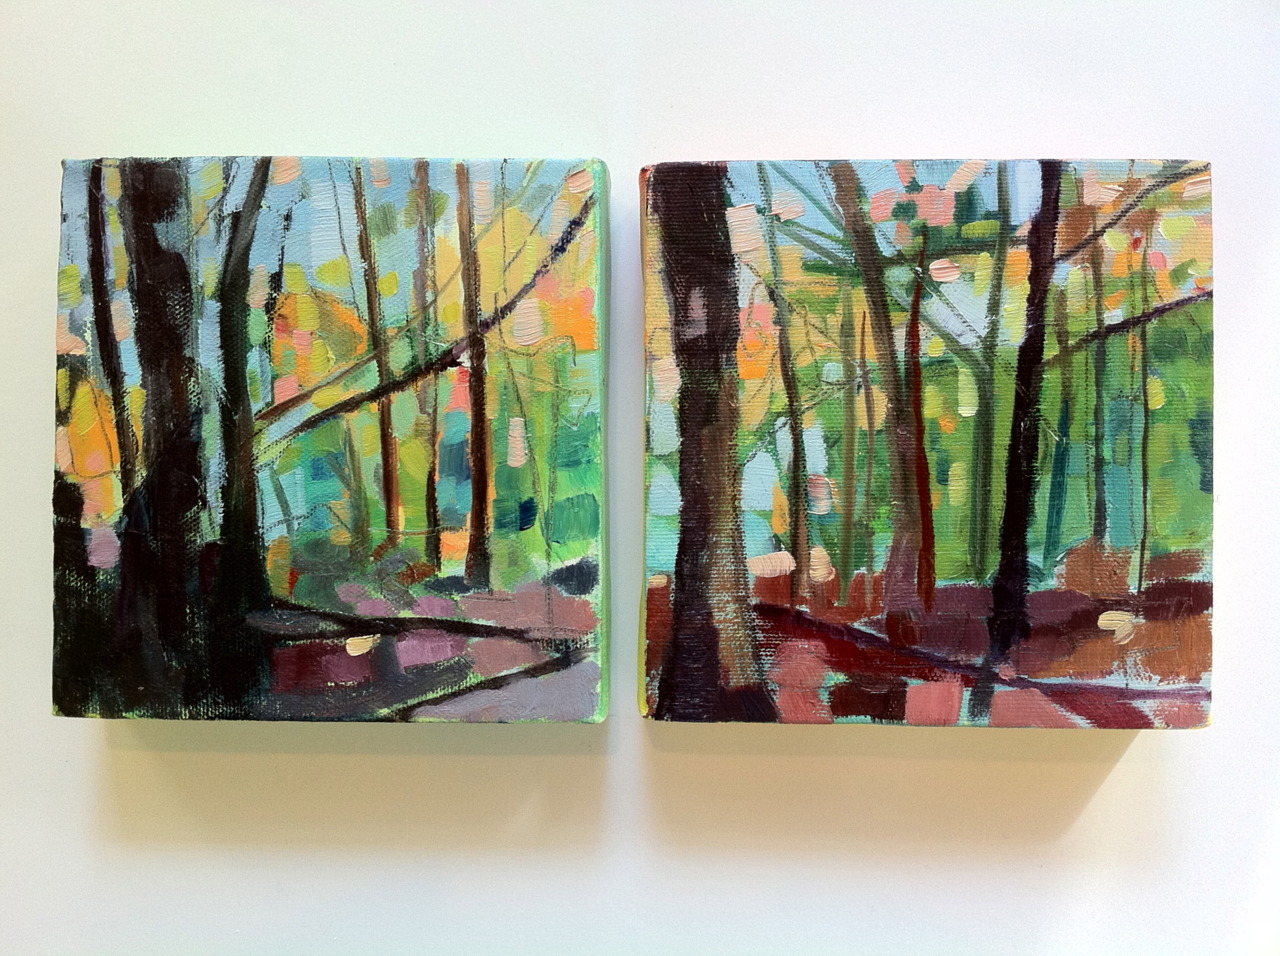 """Last of the Diptychs. This one is a bit smaller 6"""" x 12"""", oil on canvas. Even more than the others I think this could be either a diptych or 2 singular paintings. John and I took a walk in the Town Forest this morning and I got more photos of light between the trees. The shadows are so long this time of year - makes for lovely light."""